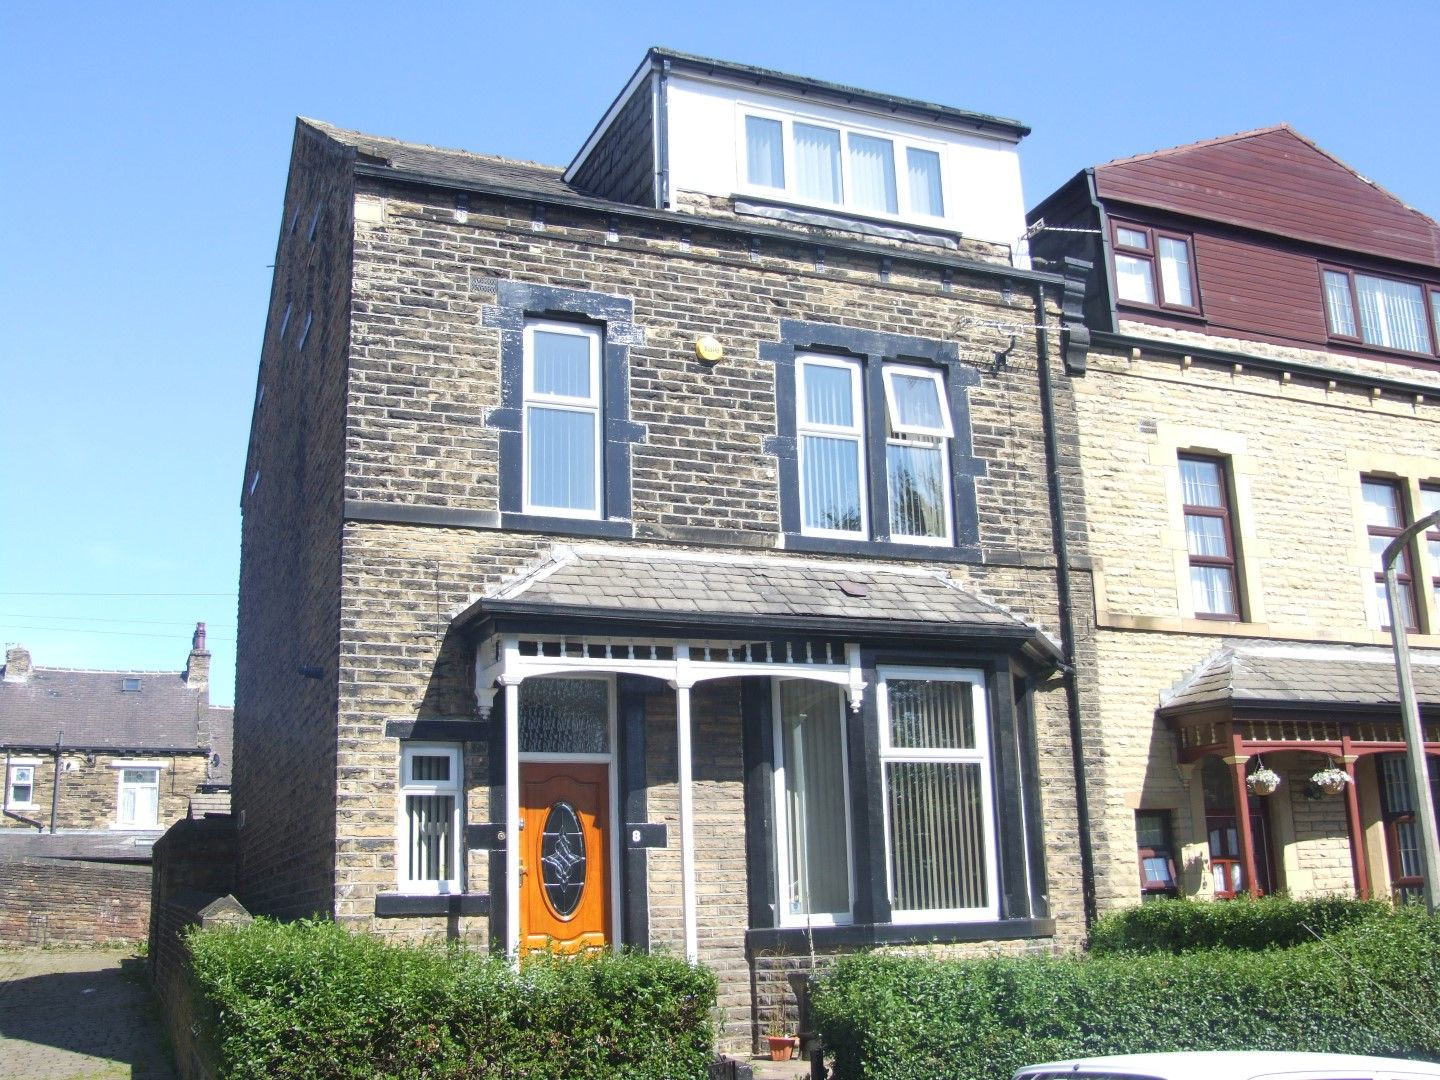 5 bedroom end terraced house Sale Agreed in Bradford - Photograph 1.